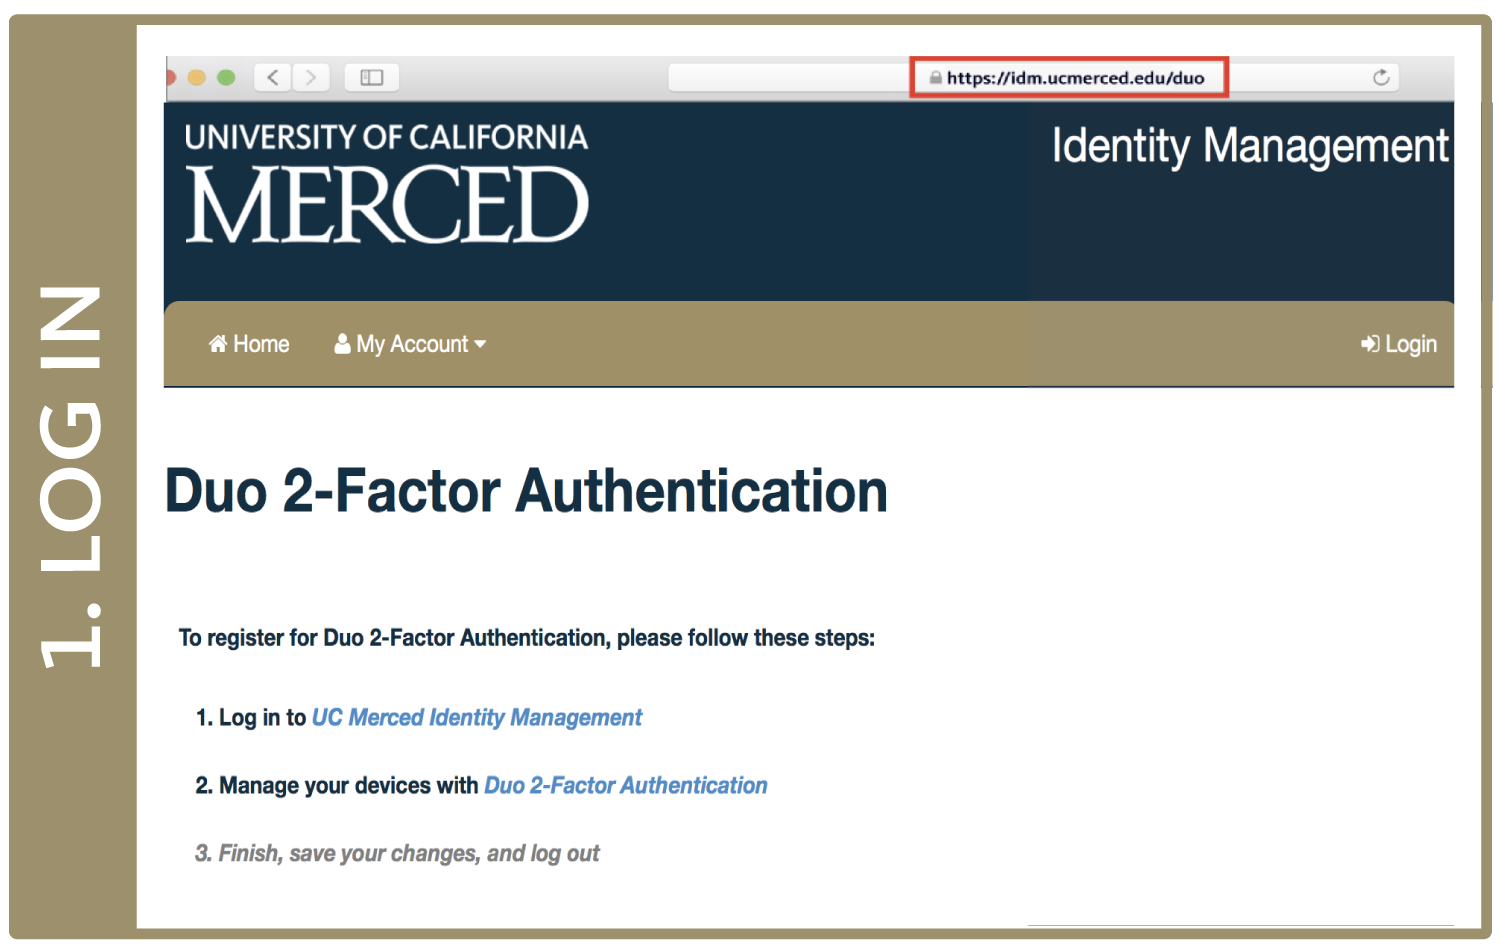 Use your computer to navigate to the UC Merced 2-Factor Authentication Enrollment page at https://idm.ucmerced.edu/duo in a Chrome browser window (U2F is only compatible with Chrome).